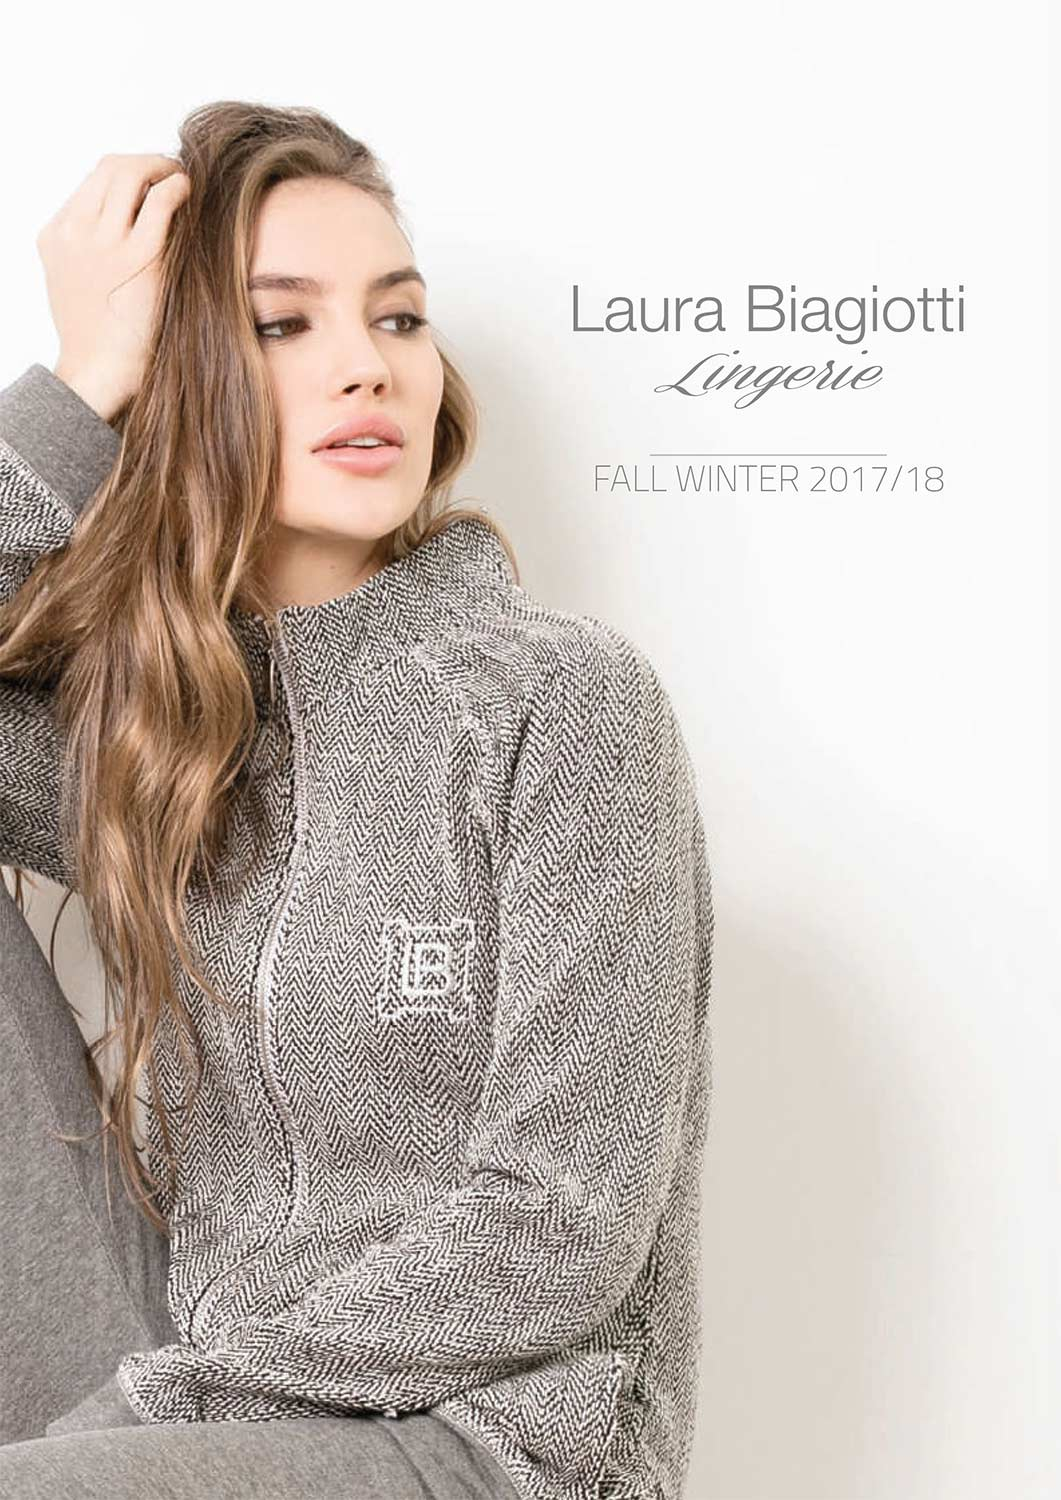 LAURA BIAGIOTTI FASHION A/I 17-18